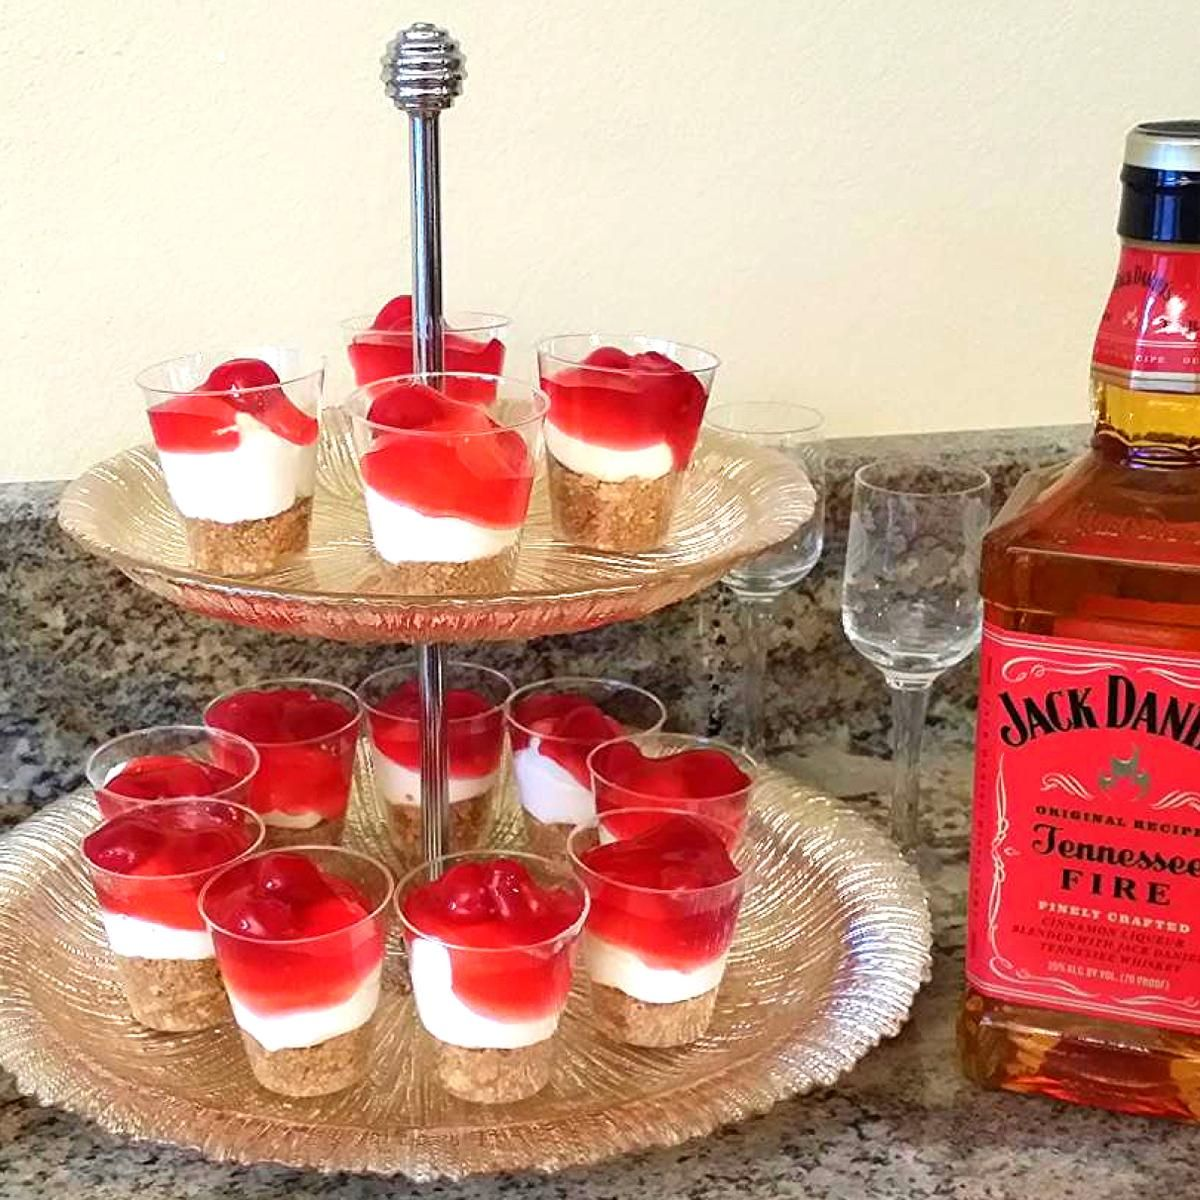 Jack Daniels Tennessee Fire Cheesecake Shots Recipe Just A Pinch Recipes